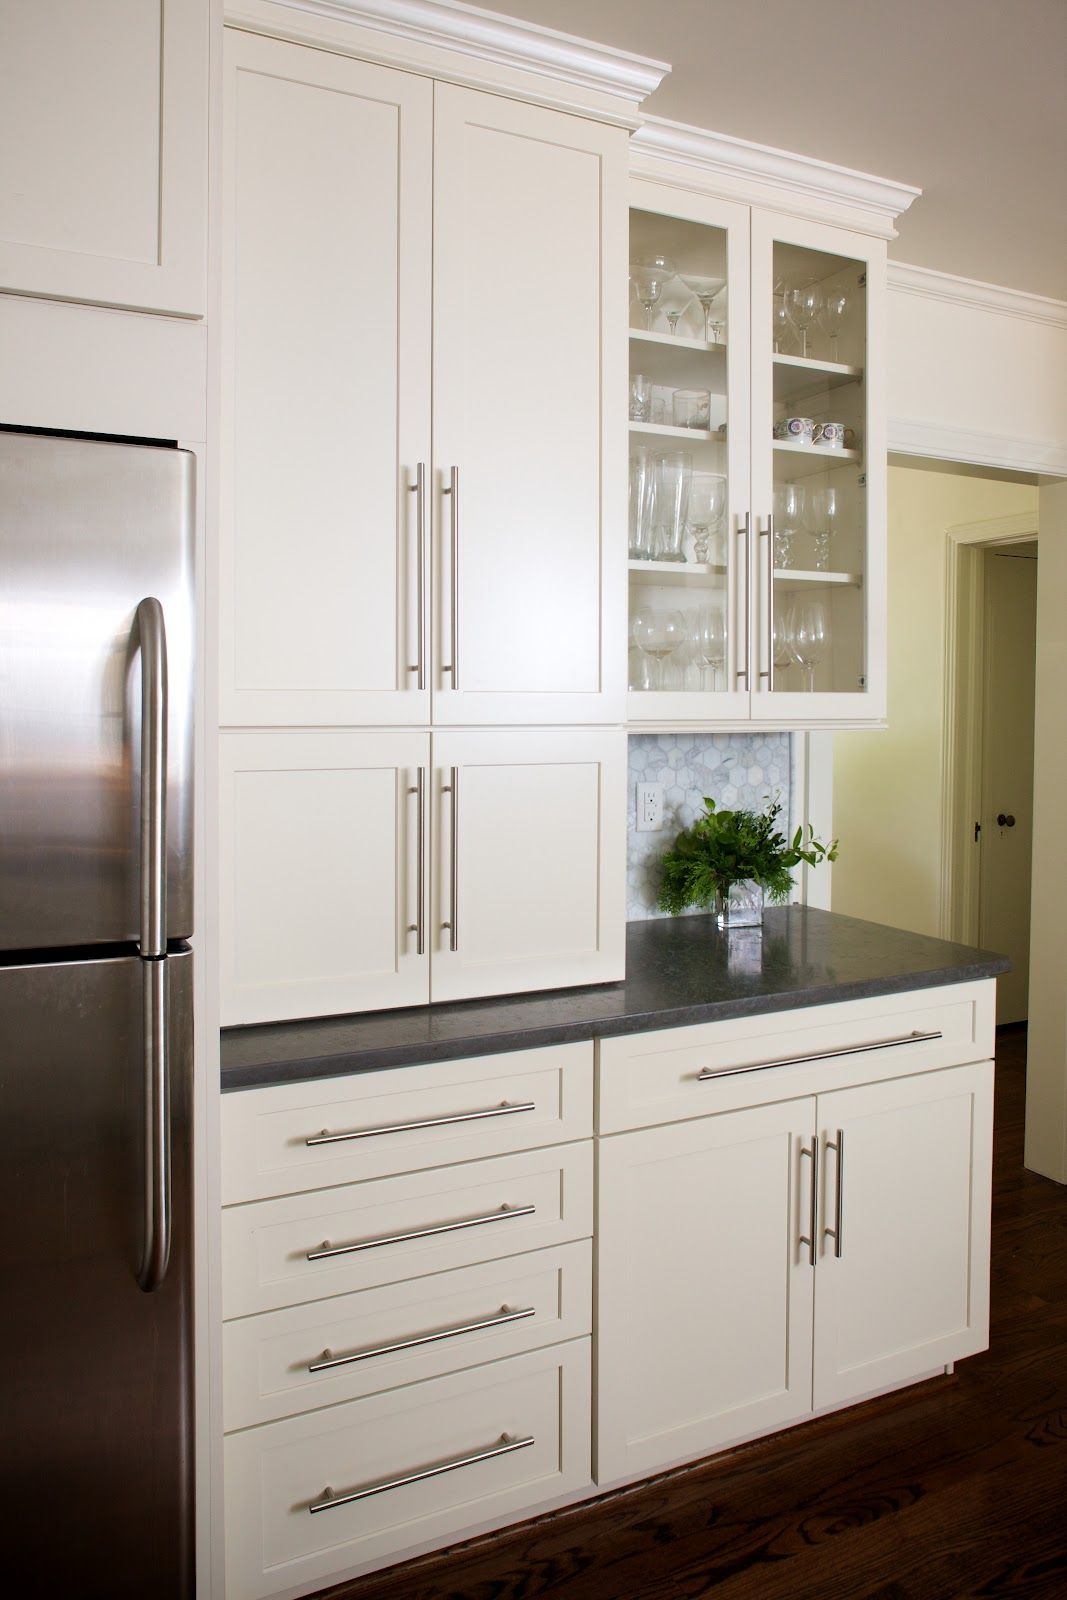 Best Classic And Modern White Kitchen Just This Picture Not A 400 x 300